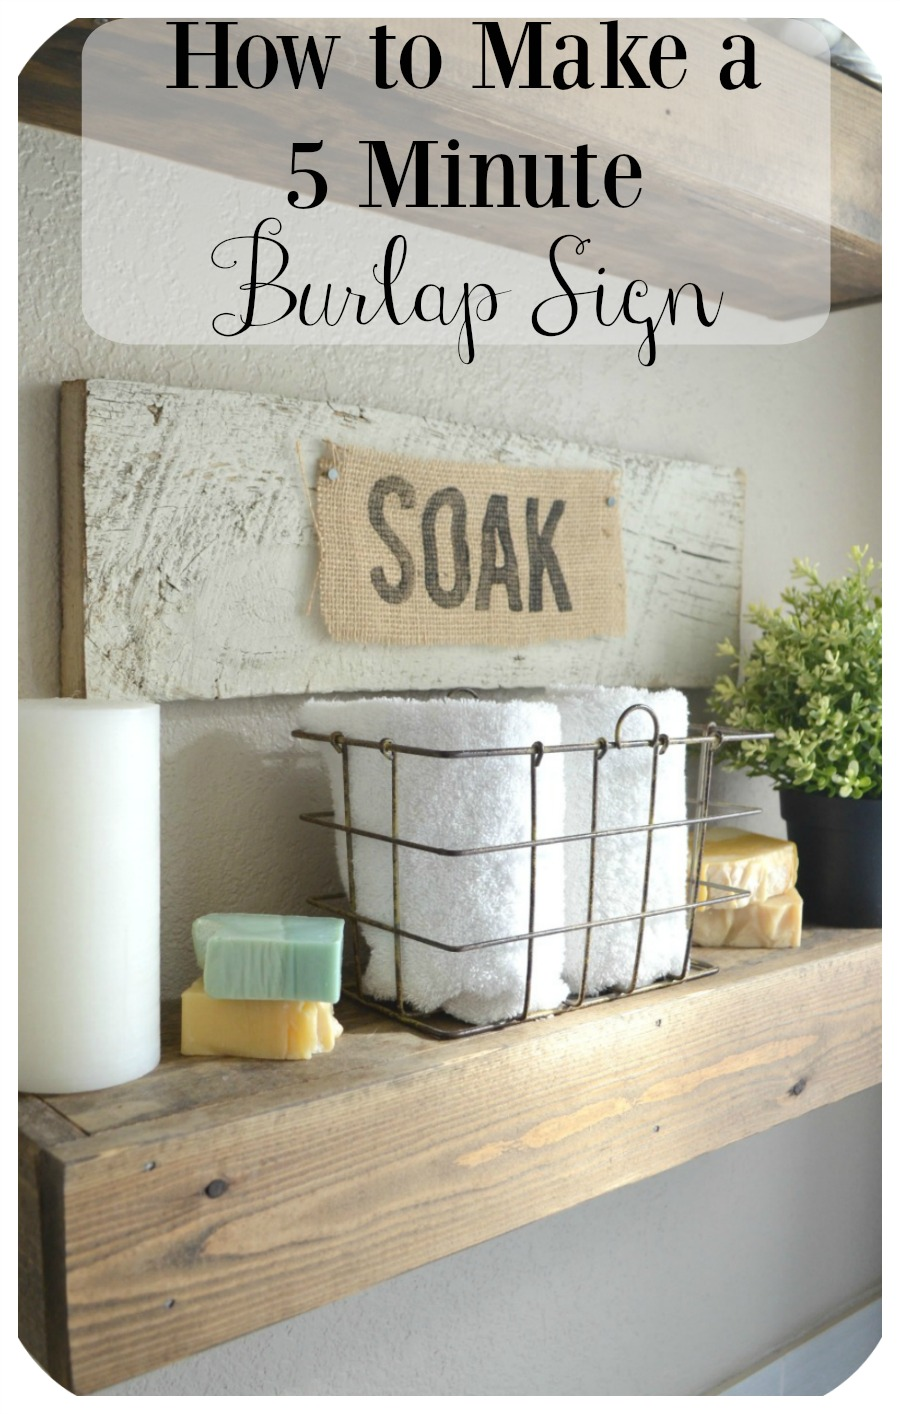 How to Make a 5-Minute Personalized Burlap Sign